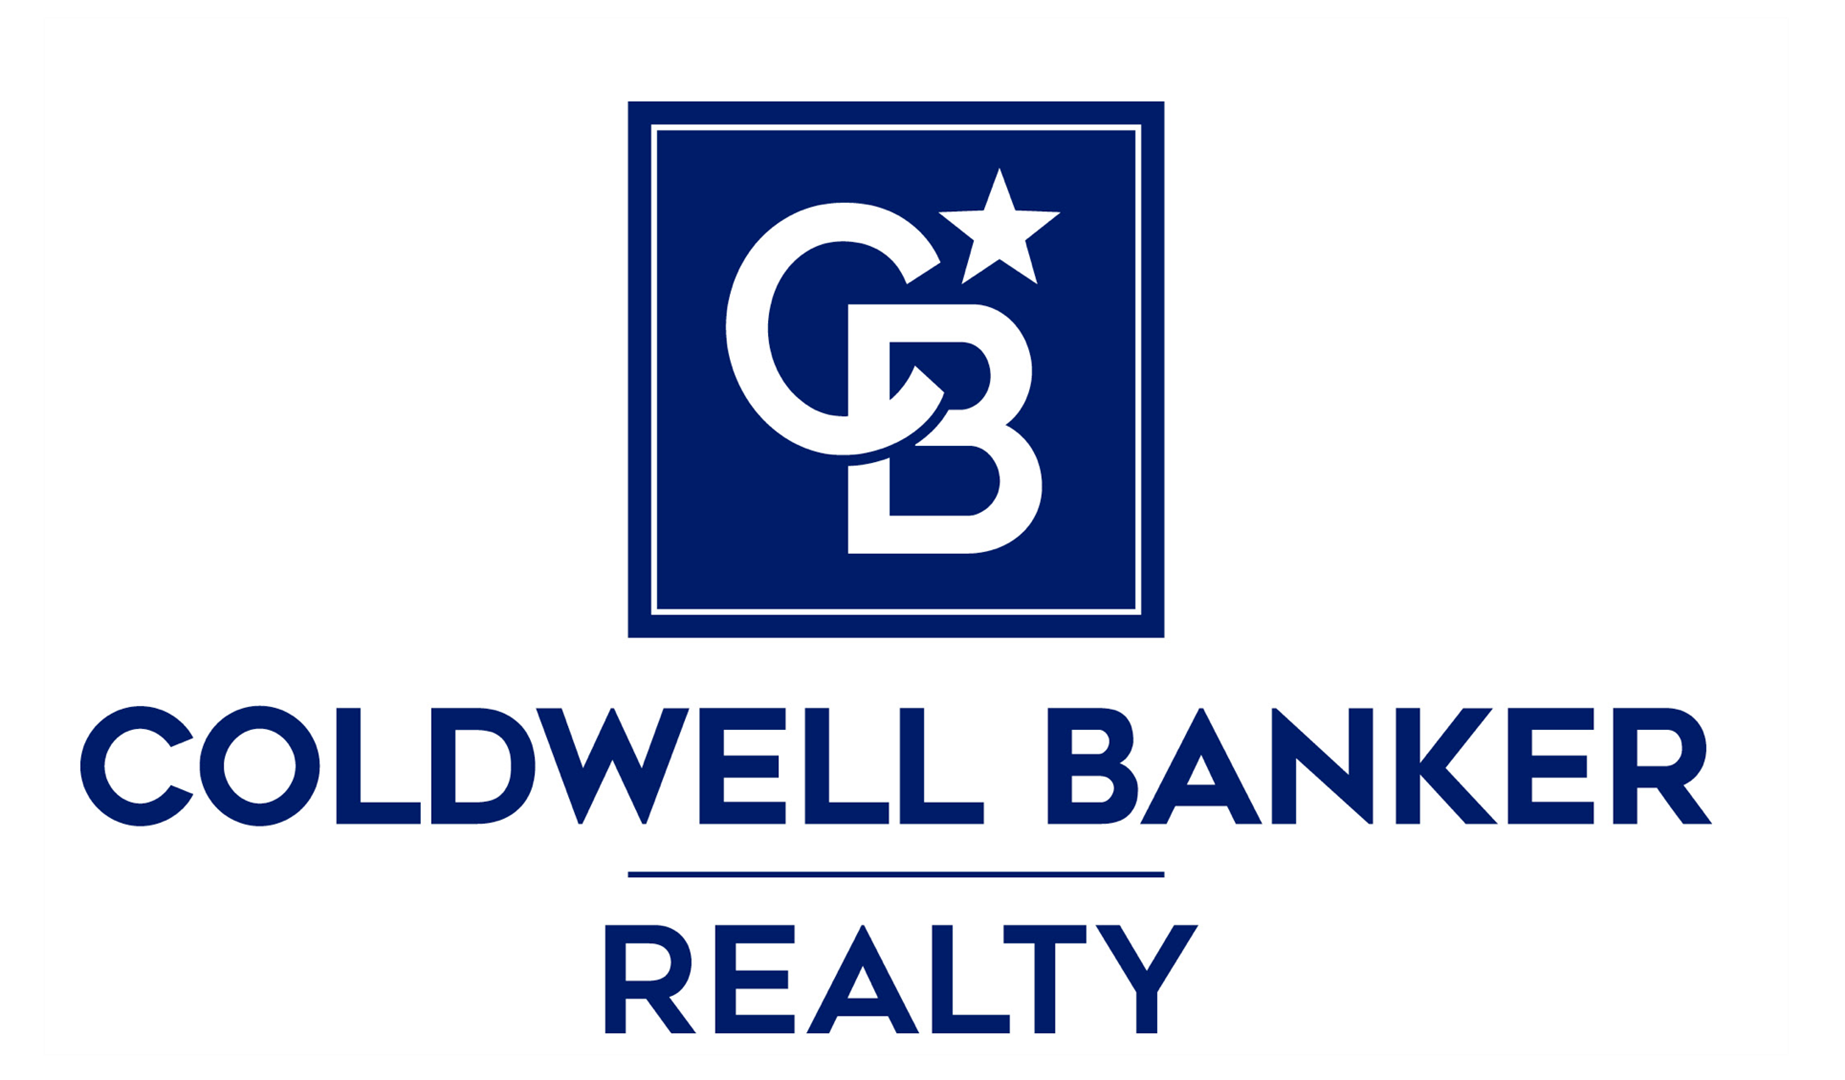 Coldwell Banker Realty 56